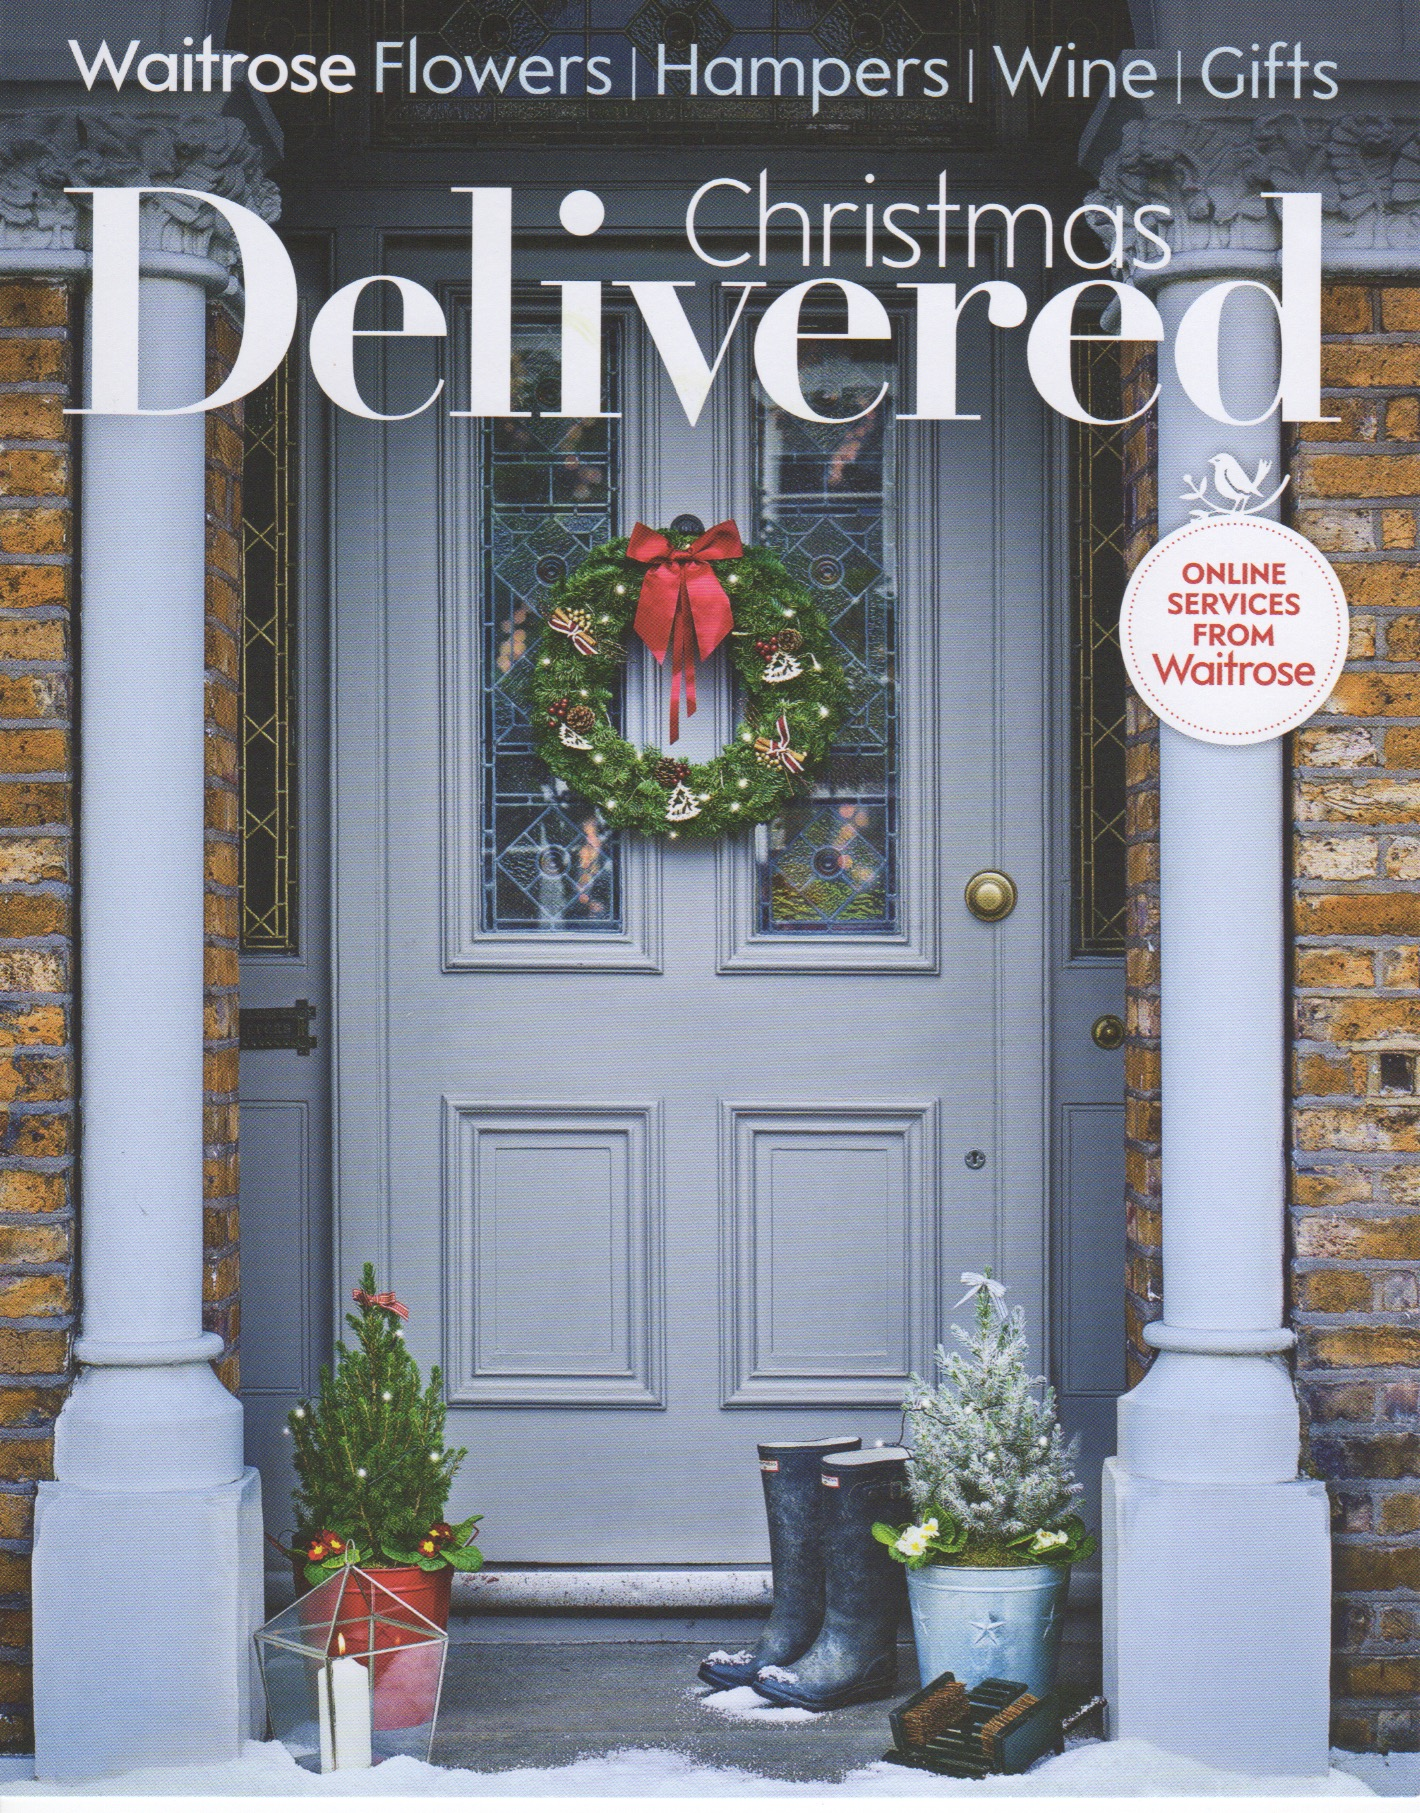 Waitrose waitrose christmas delivered brochure 2015 front cover solutioingenieria Image collections